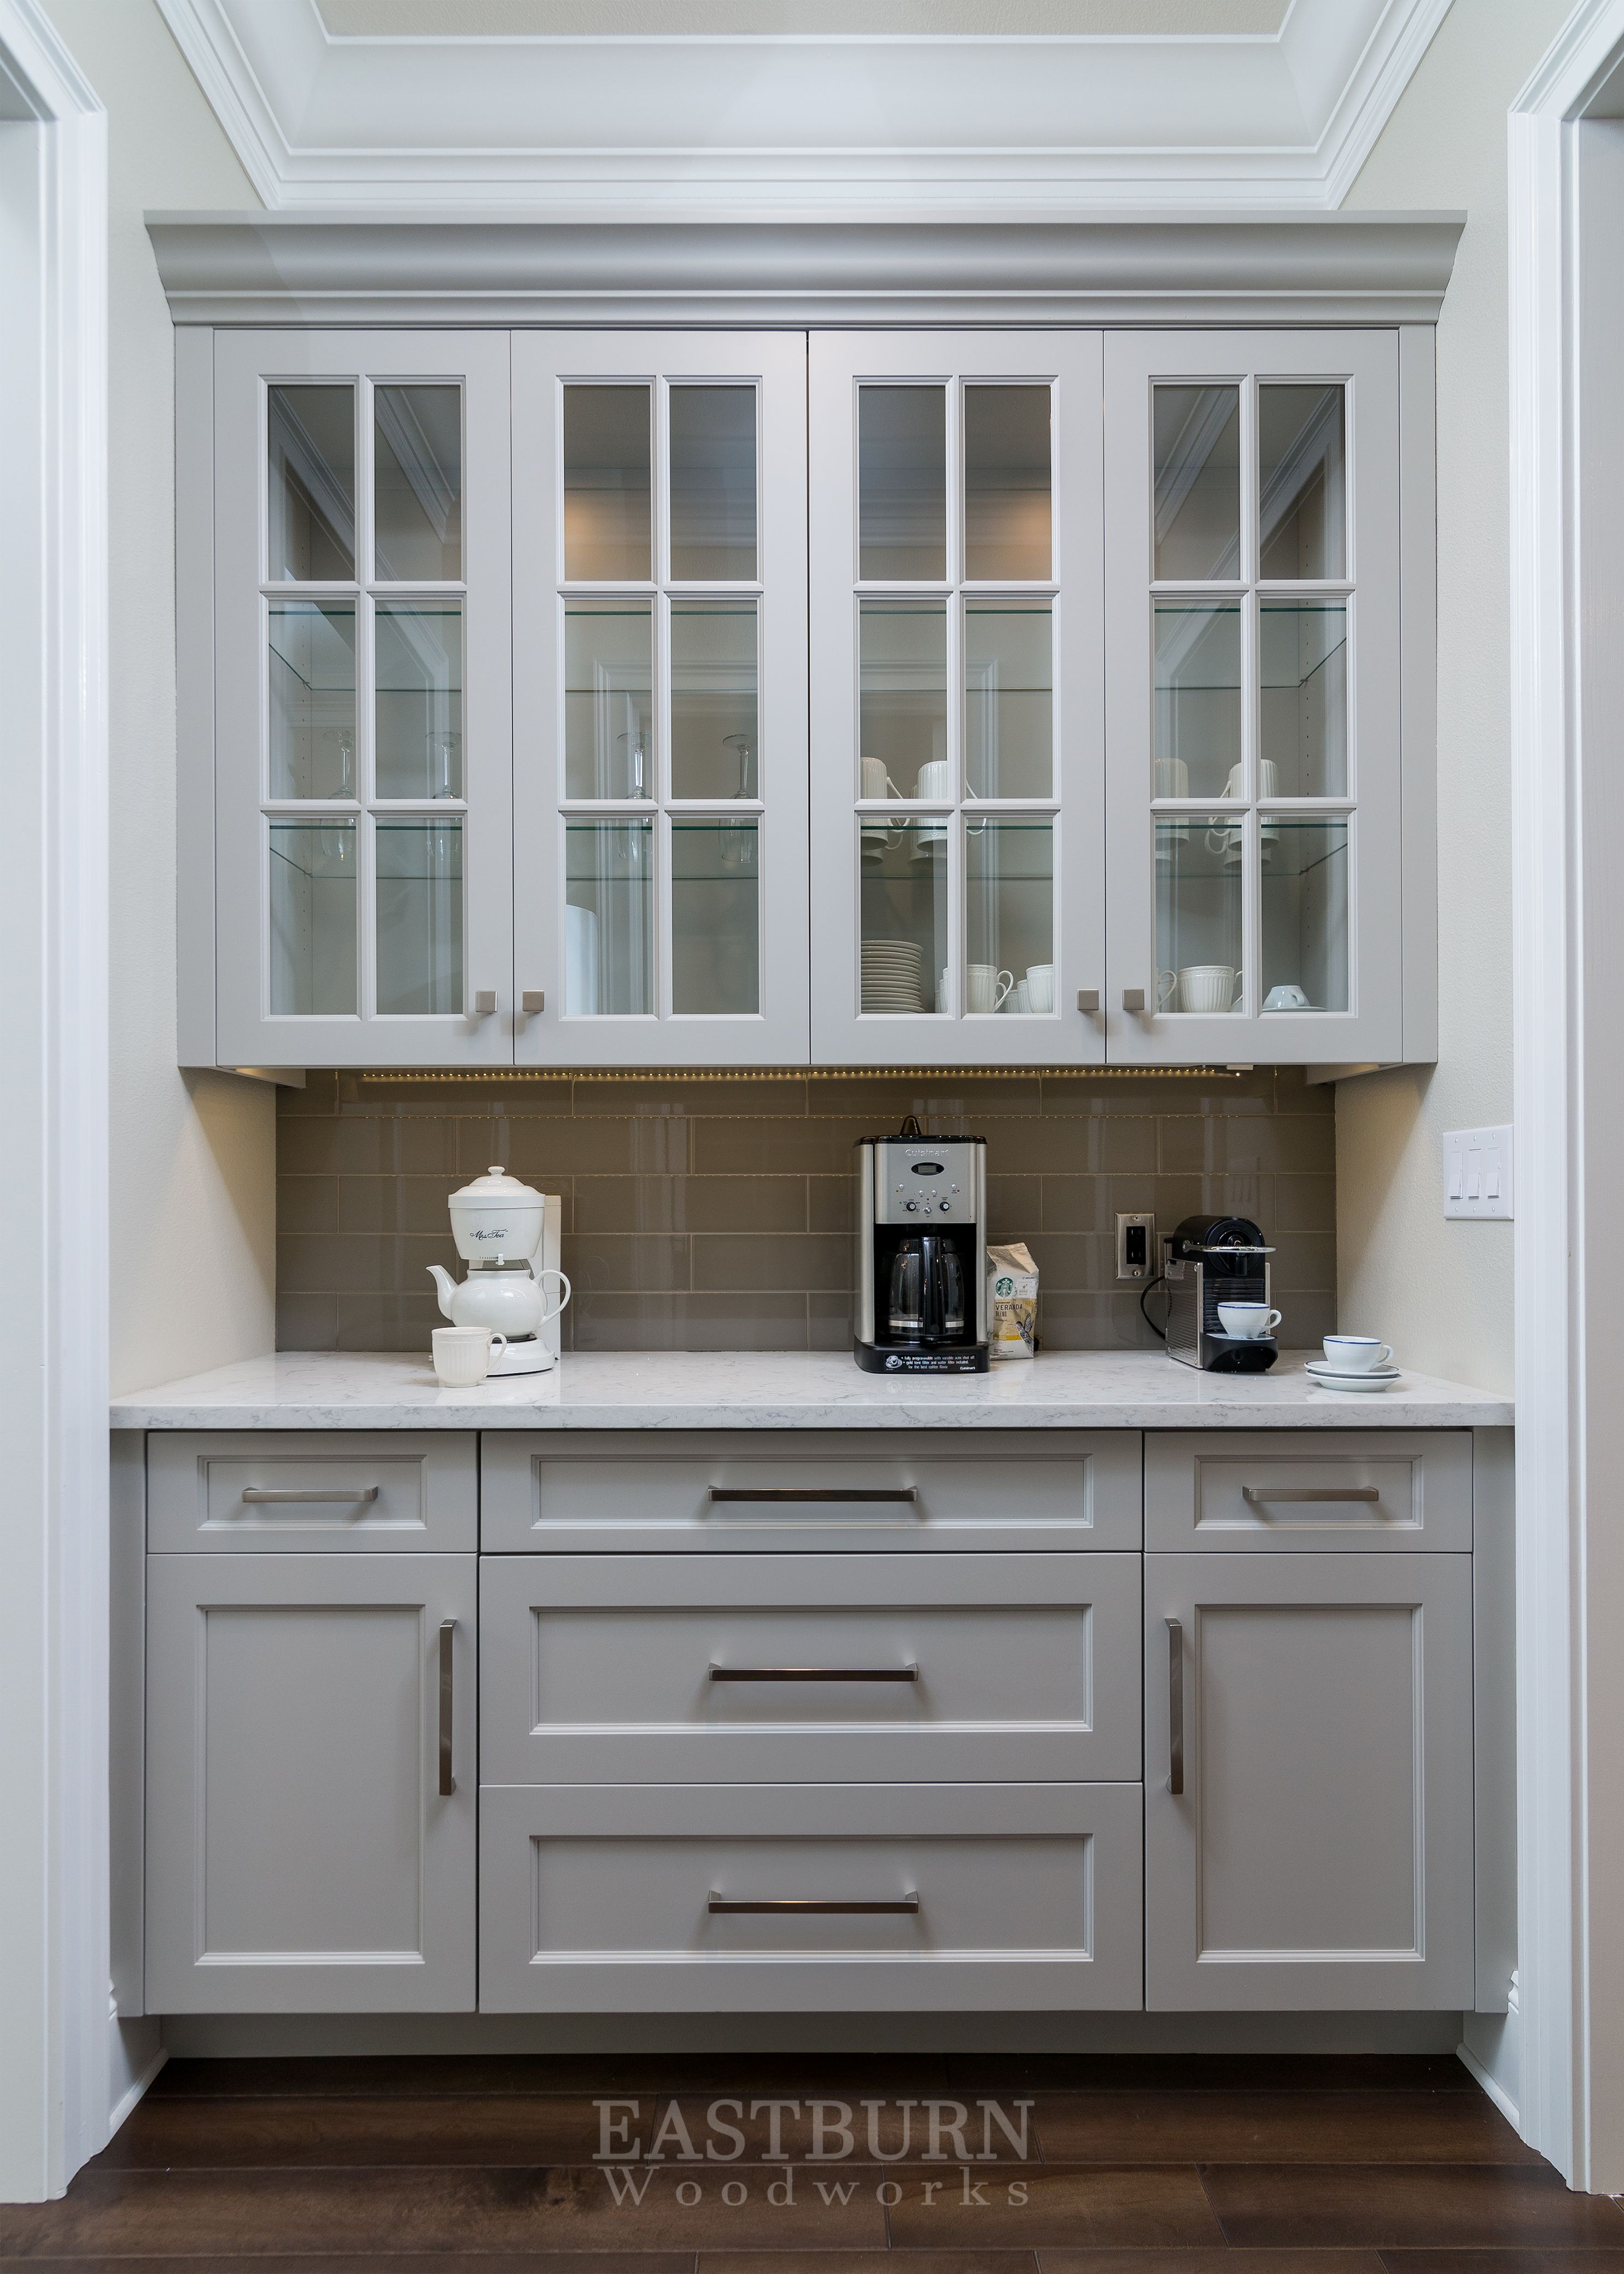 Butlerus pantry with gray painted cabinets and topknobs bar pulls